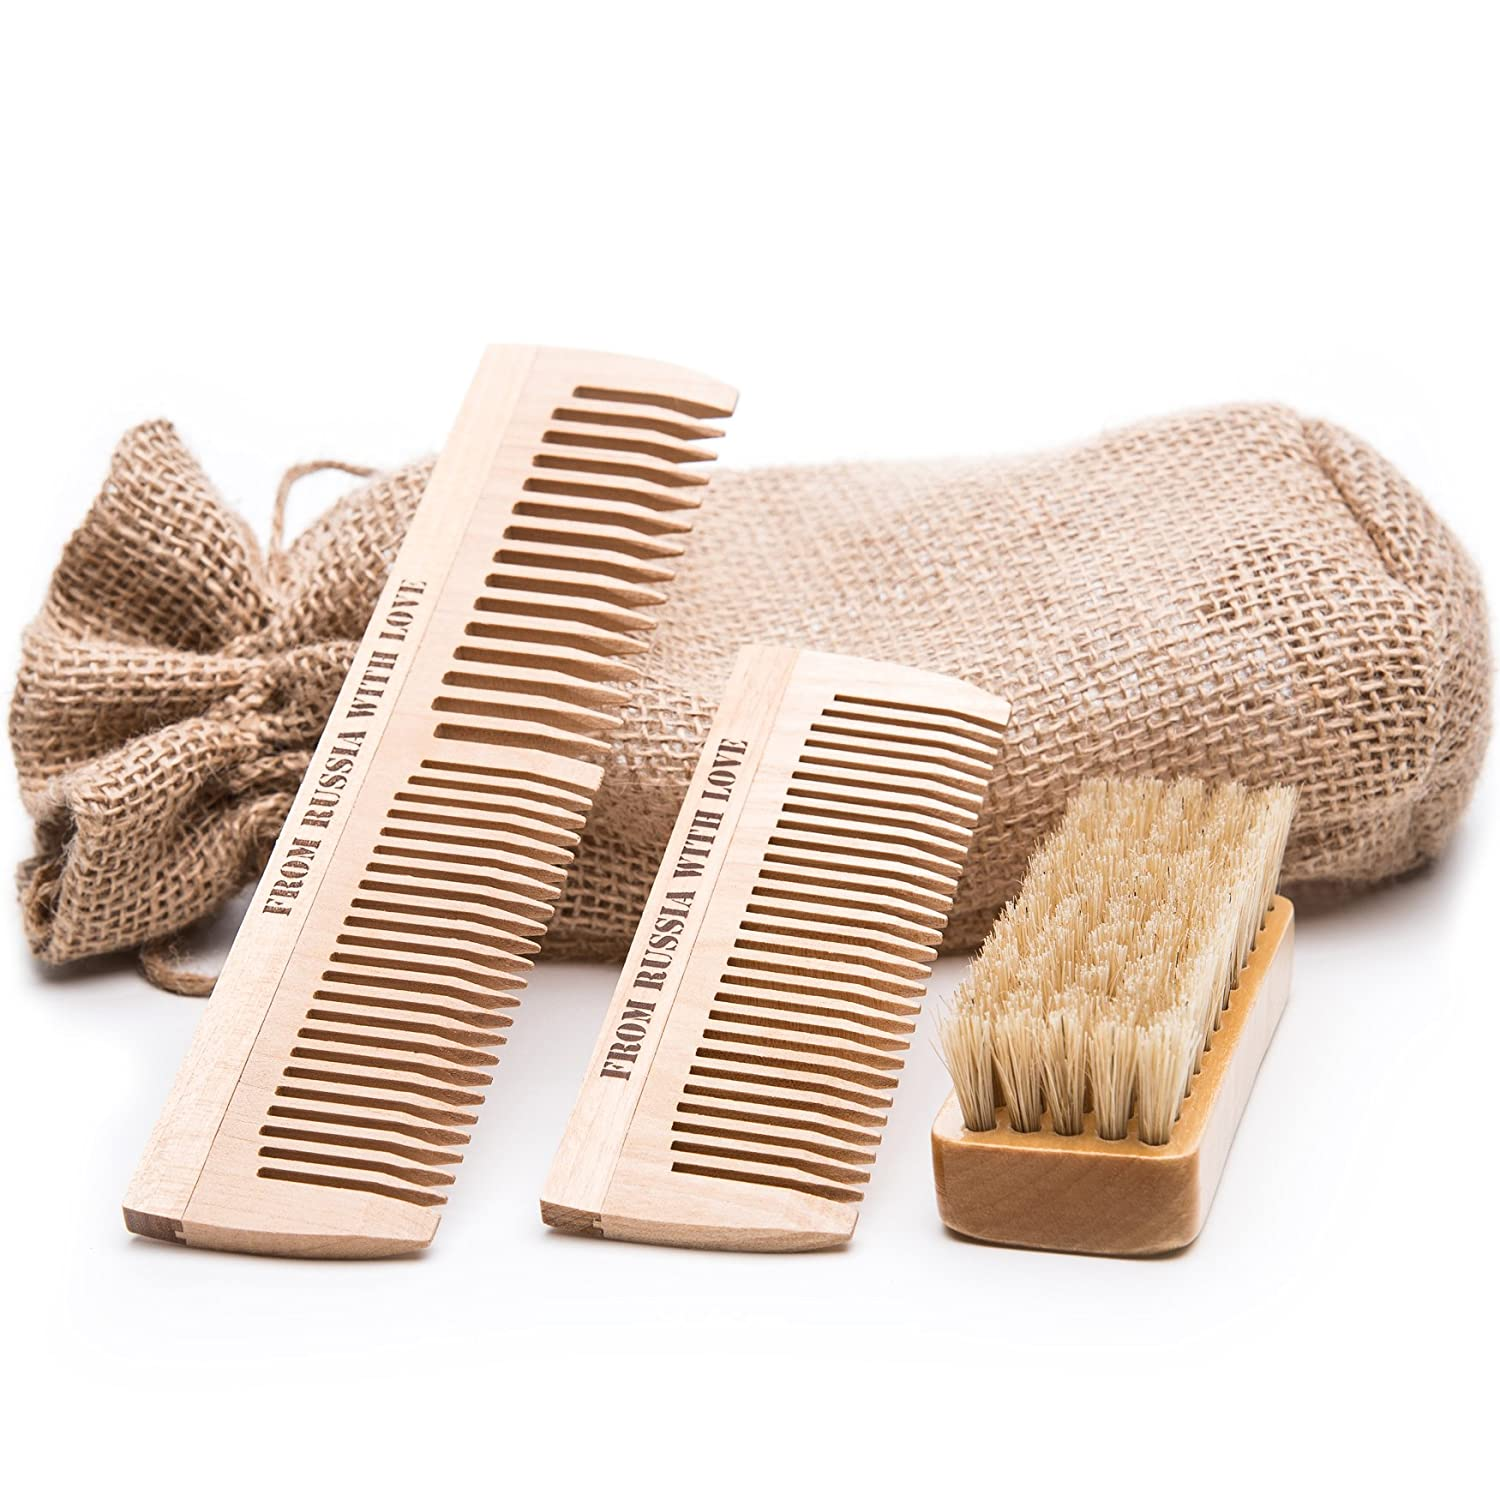 Russian Beard Brush & Wooden Combs Grooming Kit - 100% Natural Boar Bristle & Organic Birch Wood - Use With Oil, Balm or By Itself - Includes Sackcloth Pouch, Brush and 2 Combs